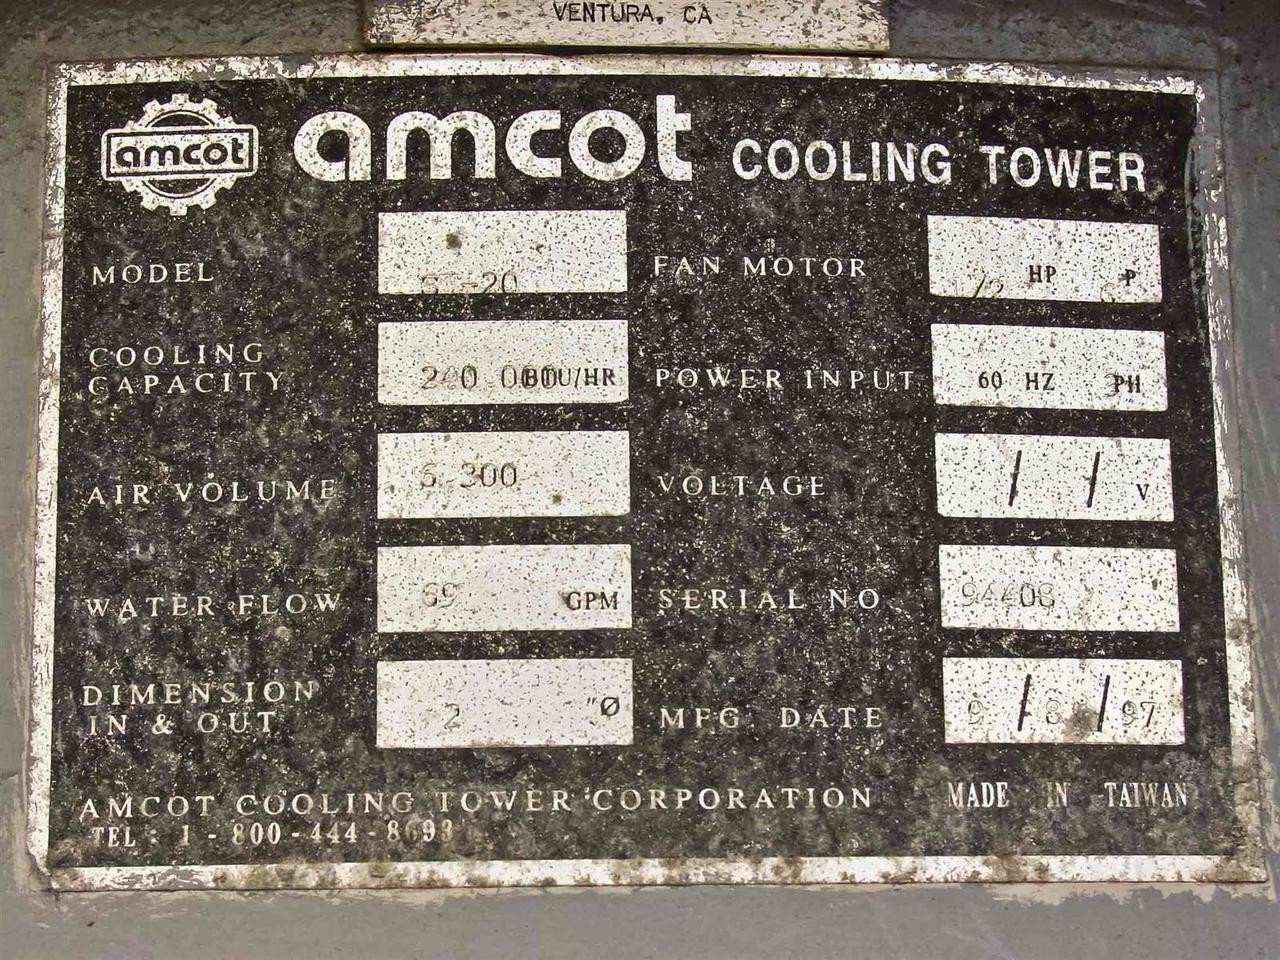 Amcot St 20 Cooling Tower Recycledgoods Com